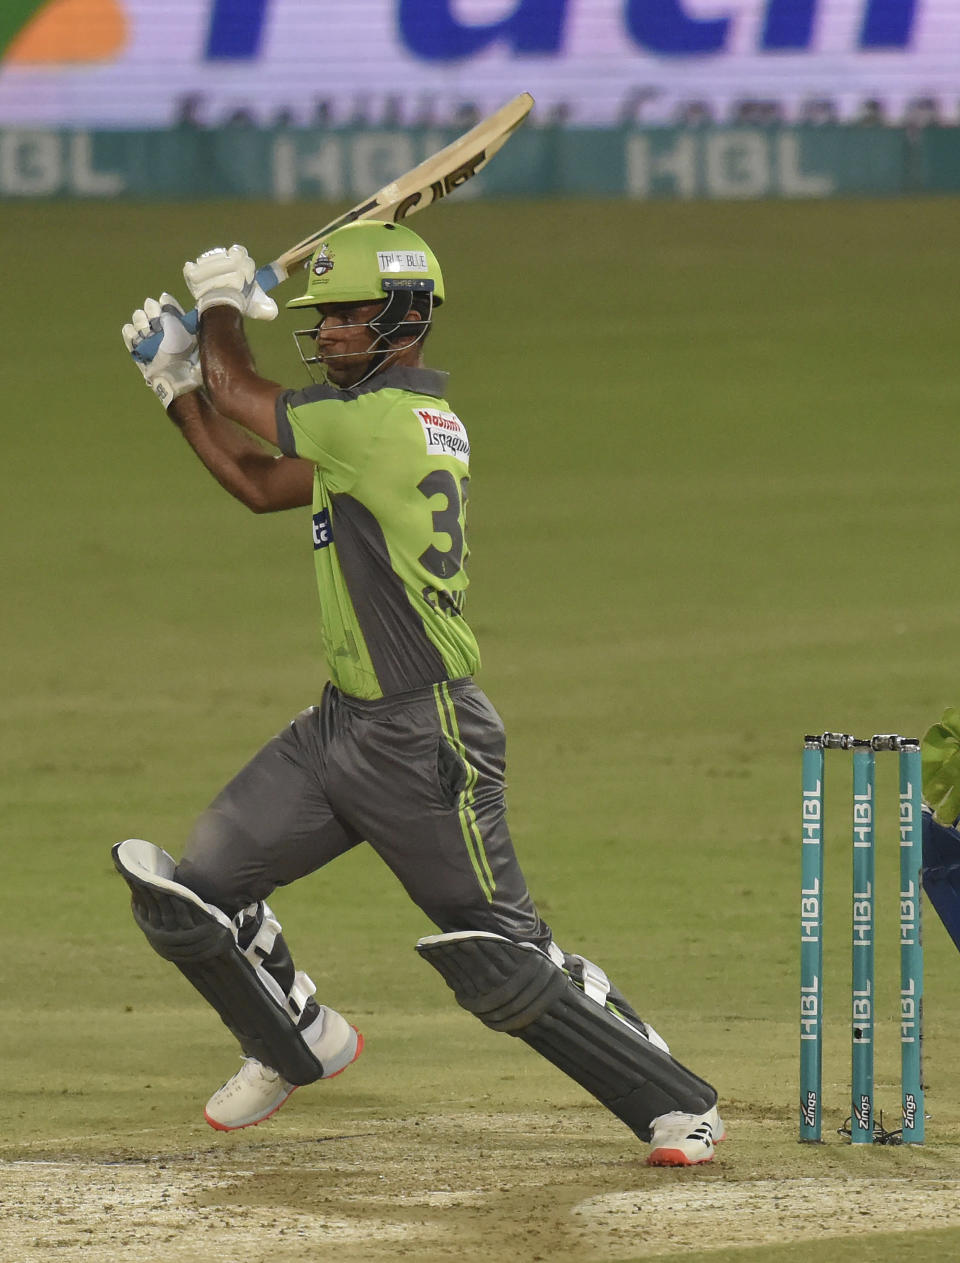 Lahore Qalandars batsman Fakhar Zaman, plays a shot against Multan Sultans during the second eliminator cricket match of Pakistan Super League T20 cup at National Stadium in Karachi, Pakistan, Sunday, Nov. 15, 2020. (AP Photo/Fareed Khan)